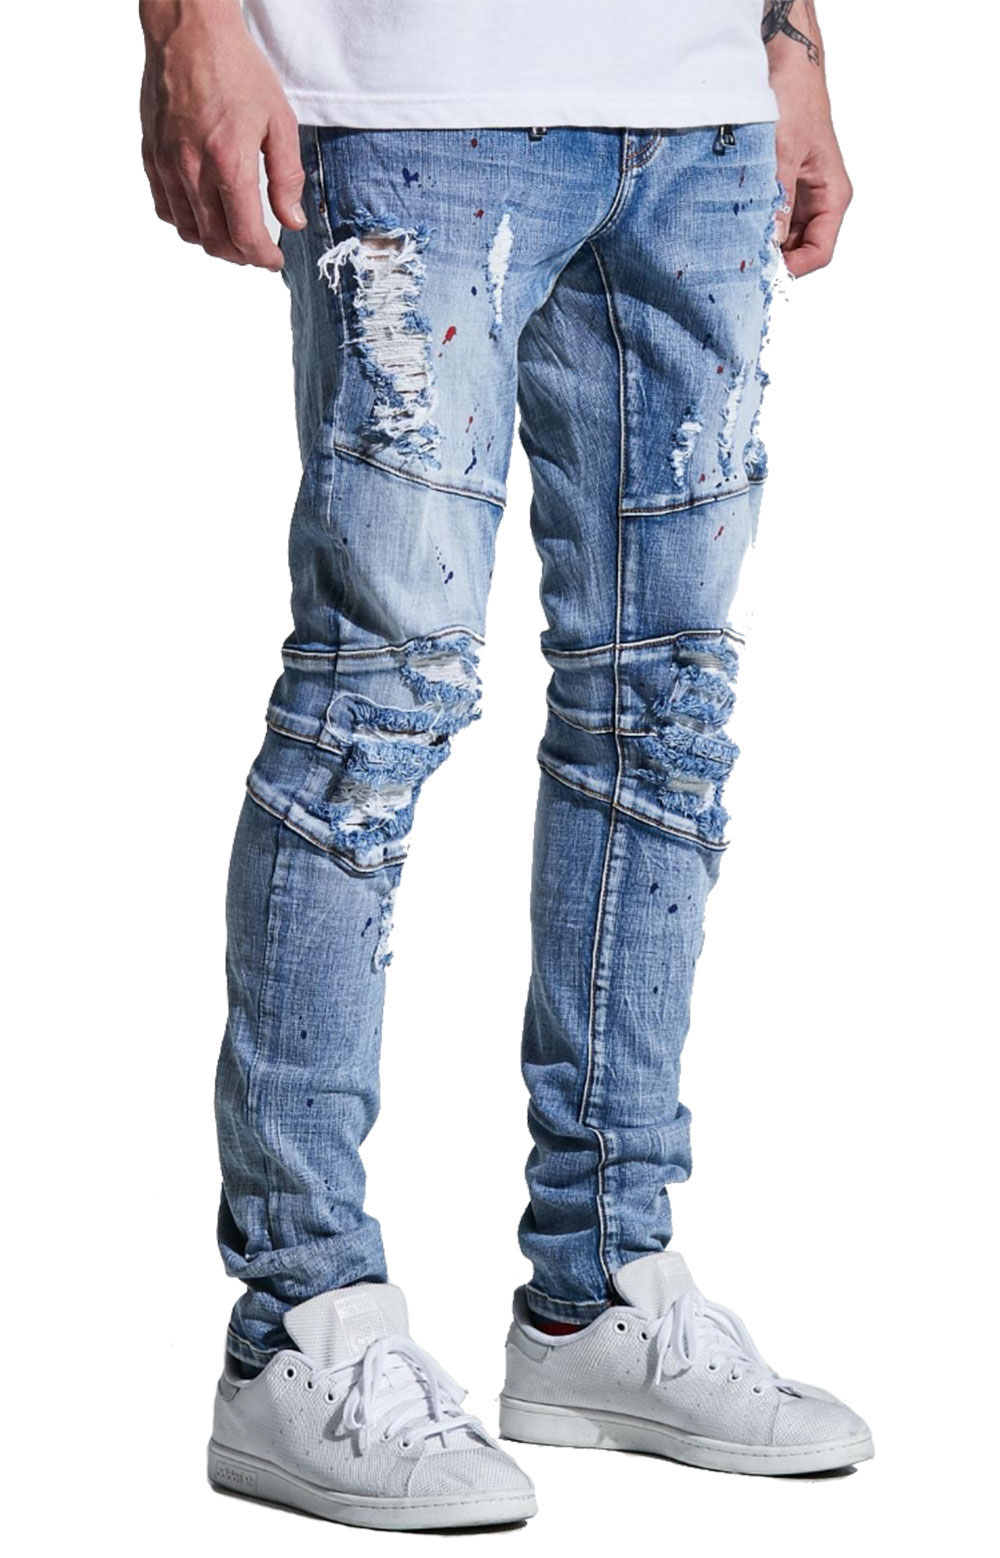 (CRYSP218-230) Montana Denim Jeans - Mid Blue